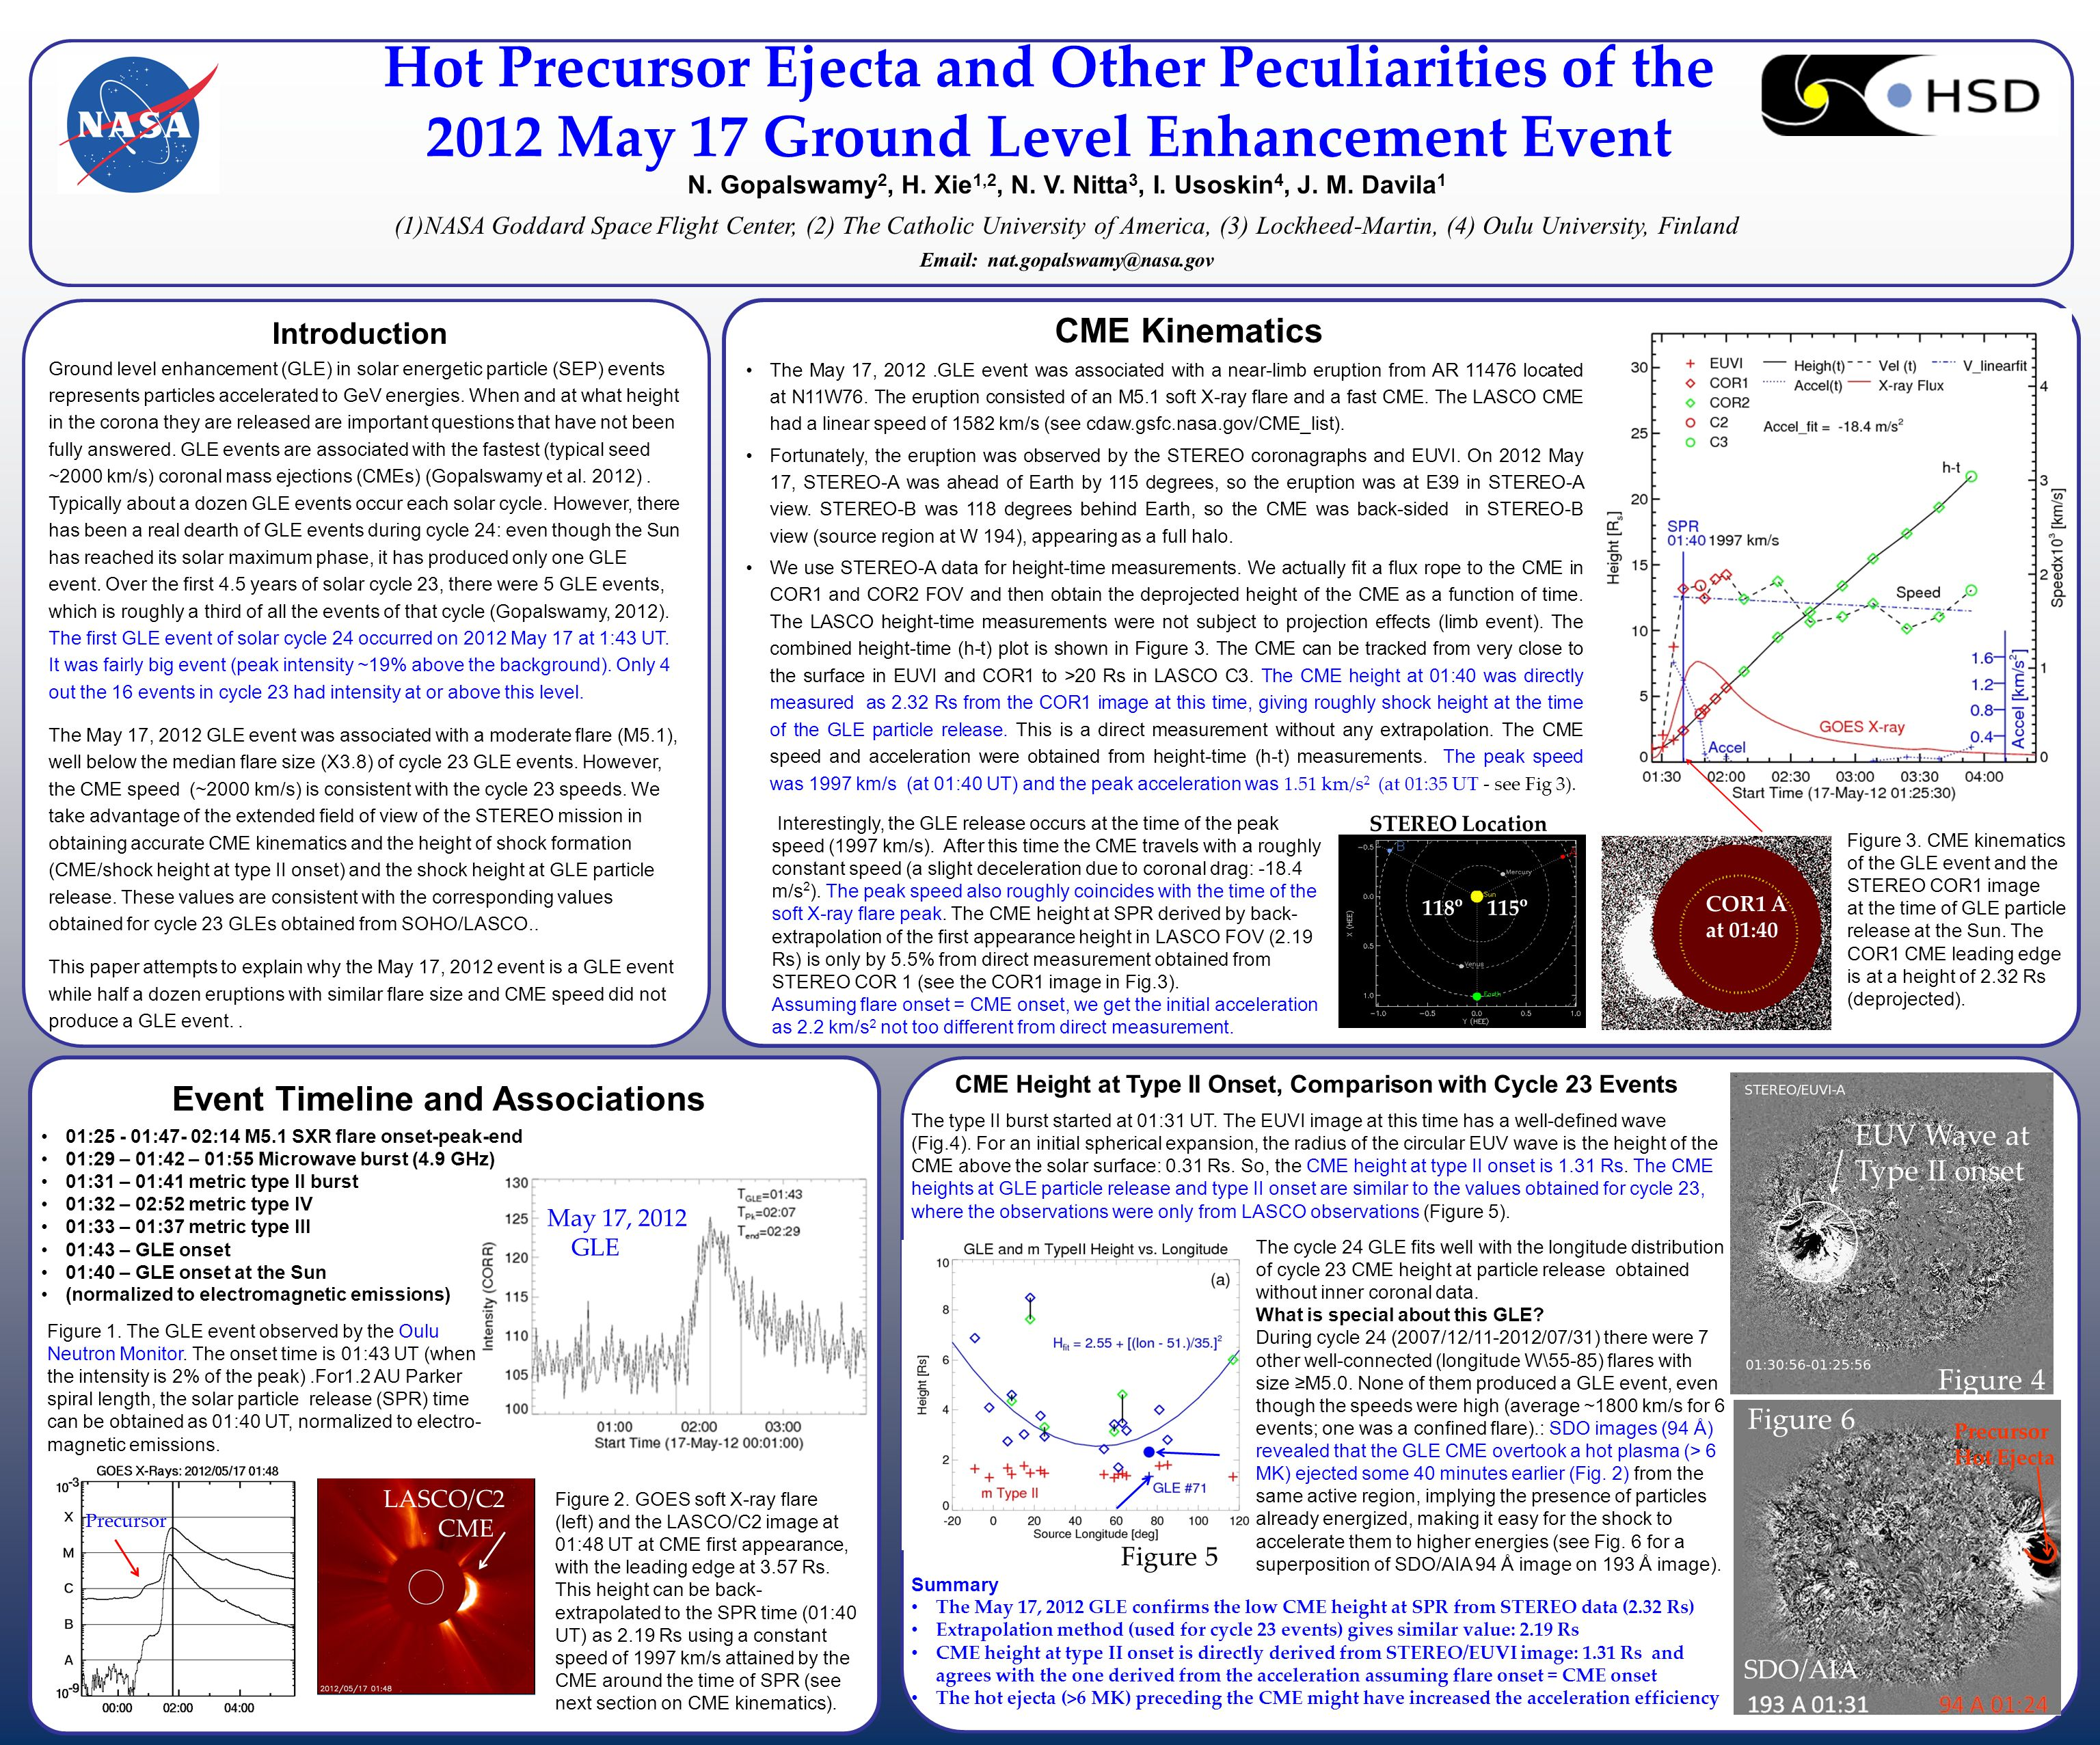 Hot Precursor Ejecta and Other Peculiarities of the 2012 May 17 Ground Level Enhancement Event N.